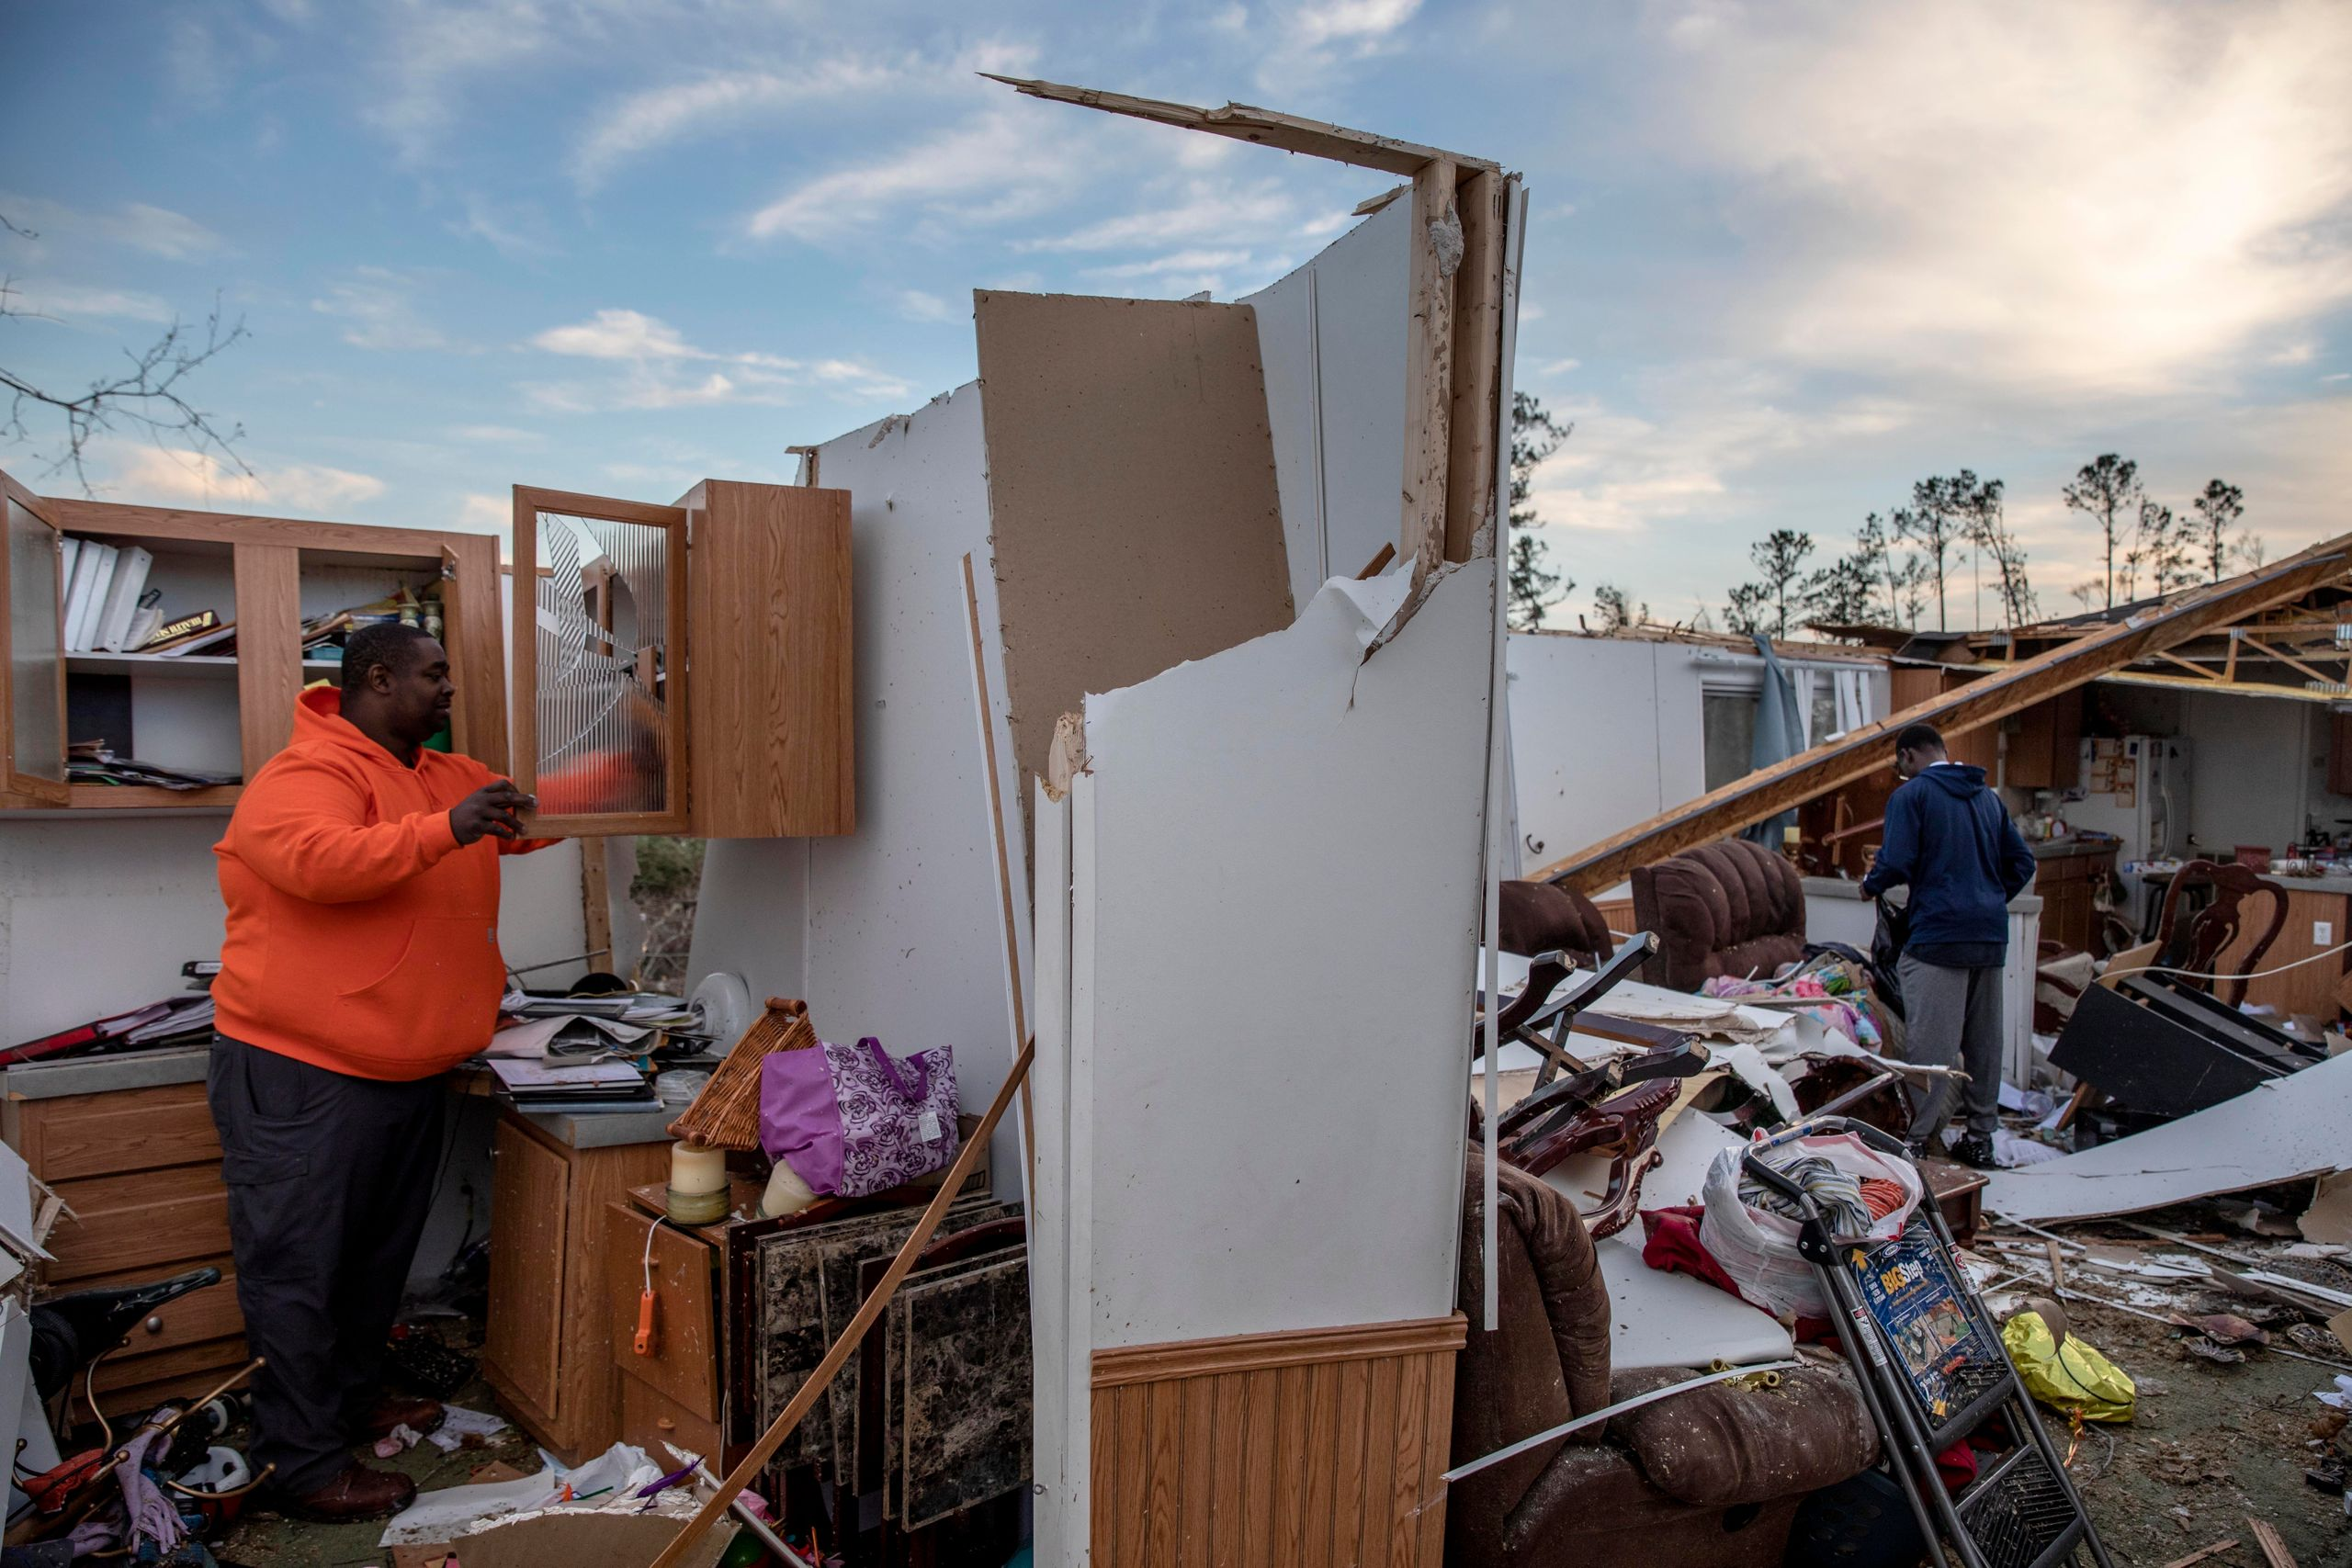 Granadas Baker, left, and son Granadas Jr. 18, right, retrieve personal items from the damaged home where they survived a tor